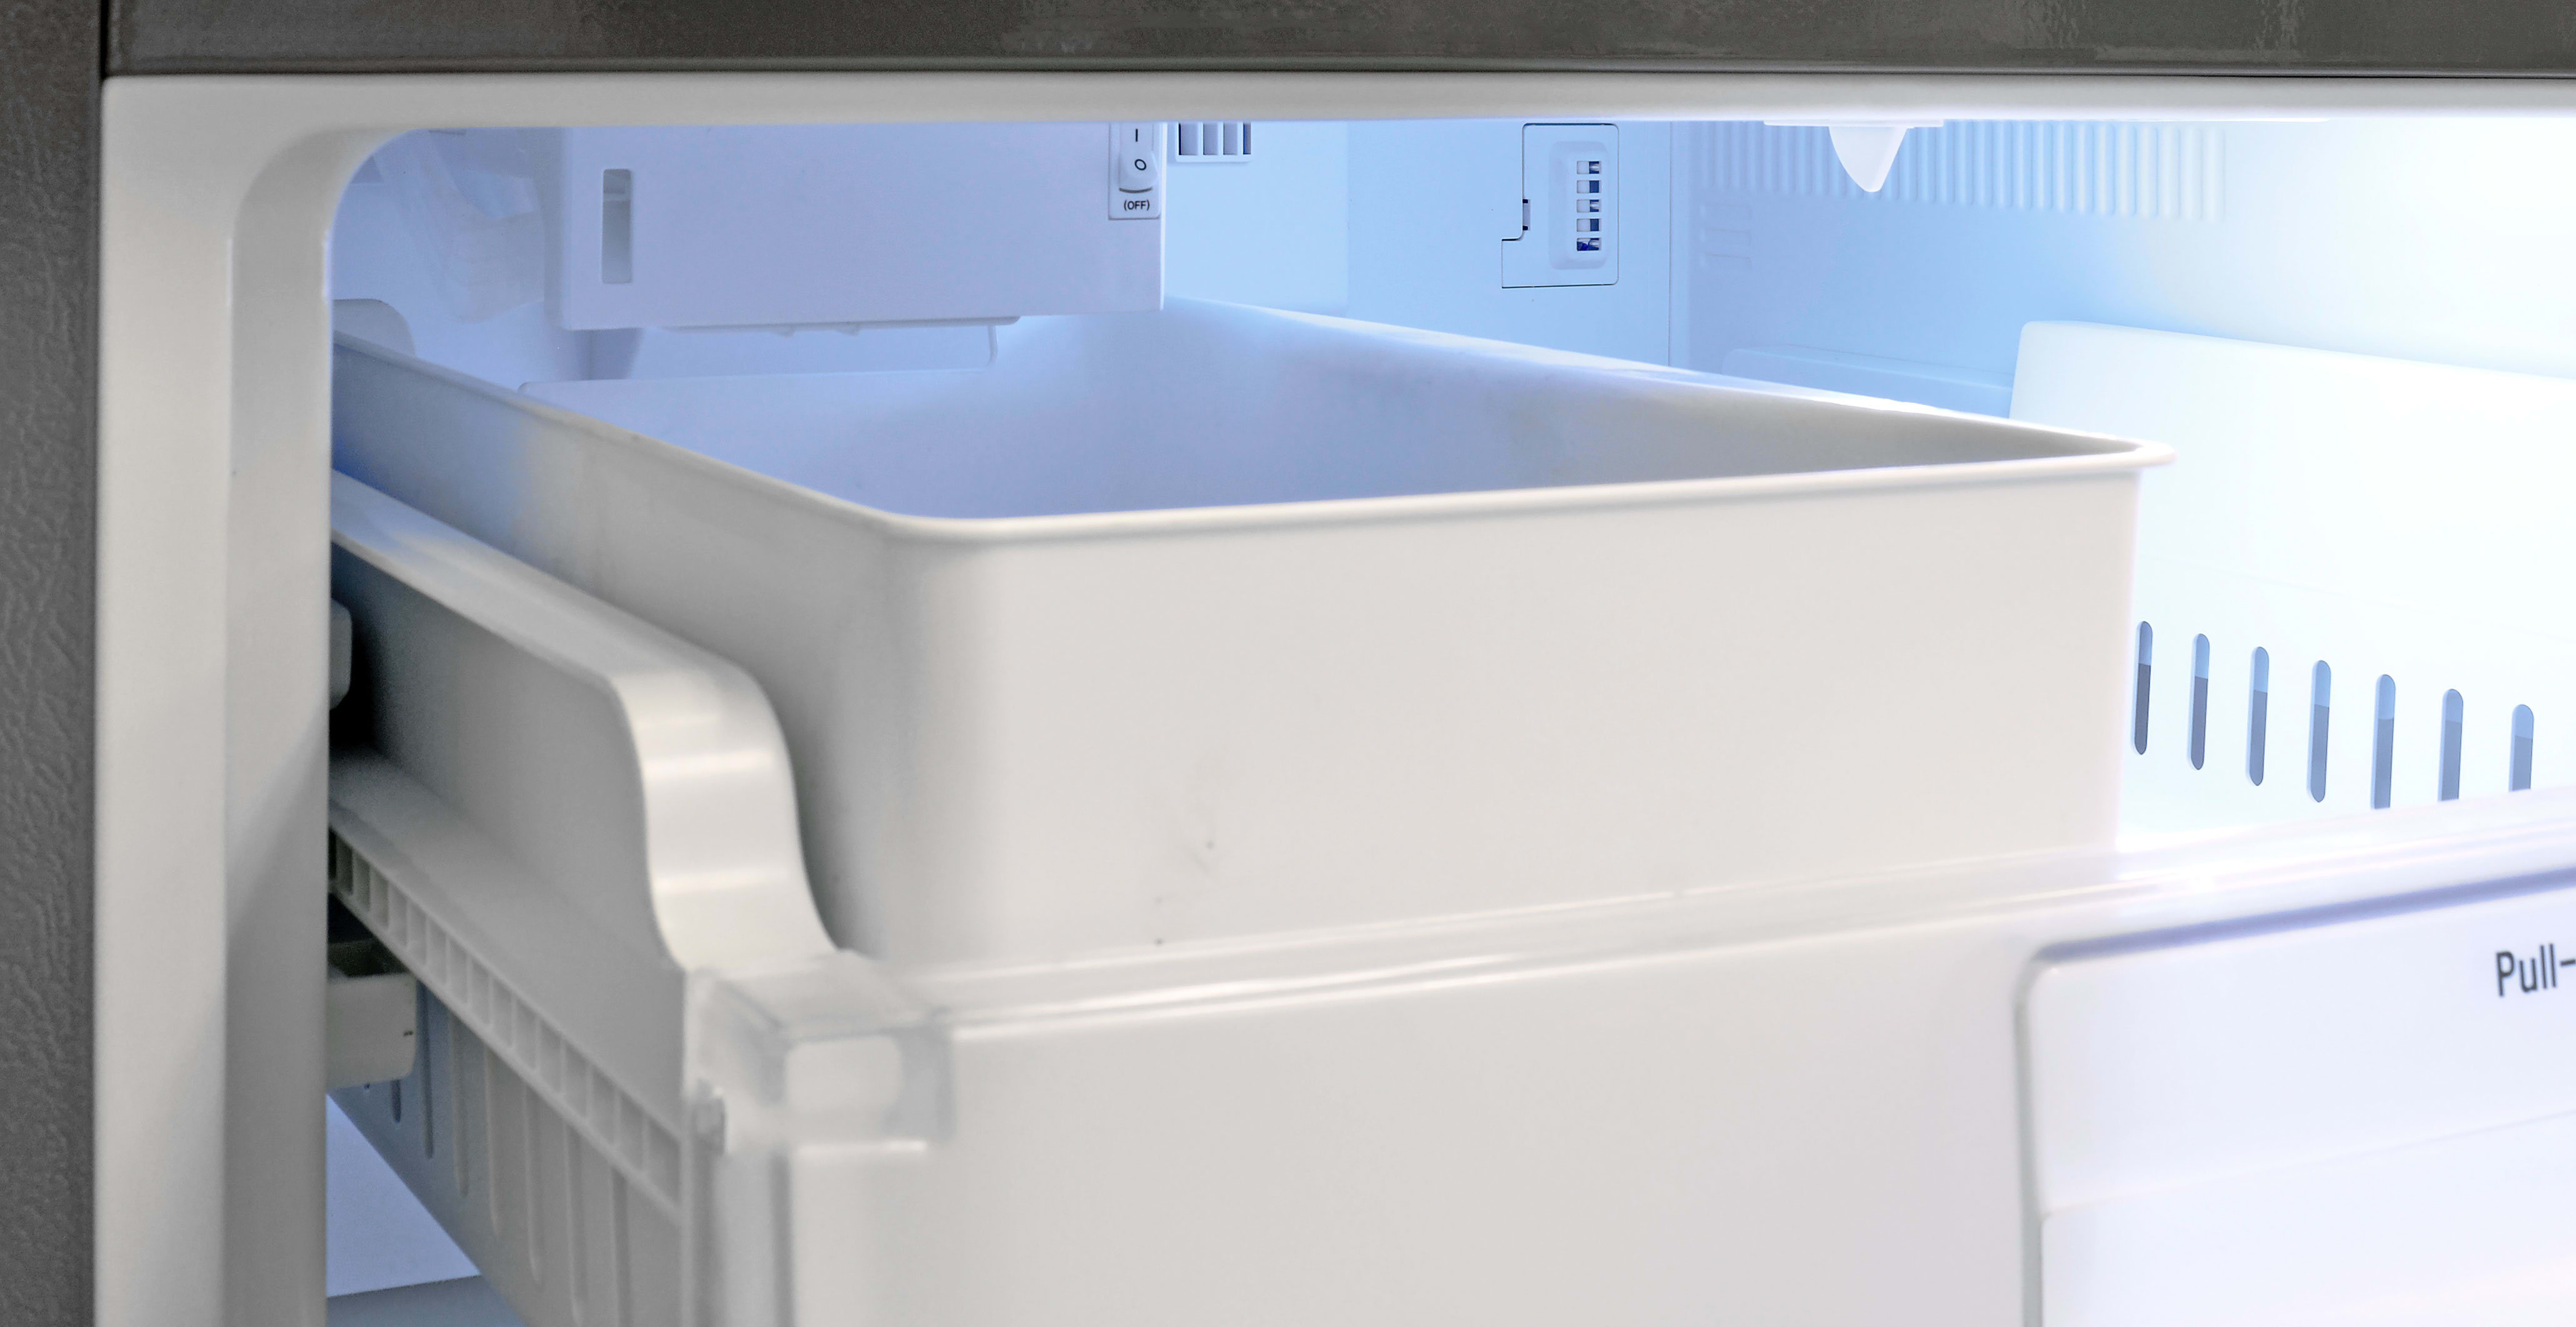 The LG LDCS24223S's unobtrusive ice maker is found tucked away into the ceiling of the freezer. There's a basic on/off switch that turns it... well, on or off.